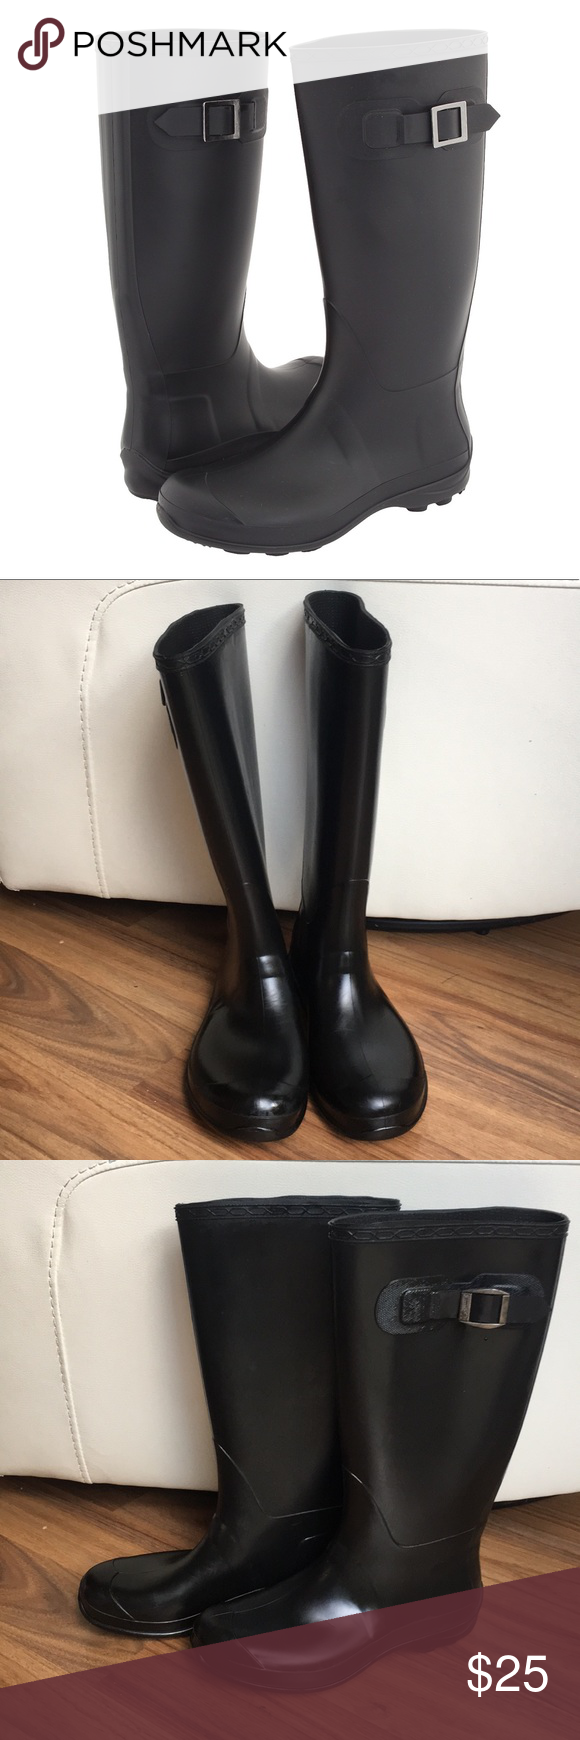 ee992792ce6b Kamik Women s Olivia Rain Boot Kamik Women s Olivia Rain Boot in use  condition check pics 04565768 Kamik Shoes Winter   Rain Boots